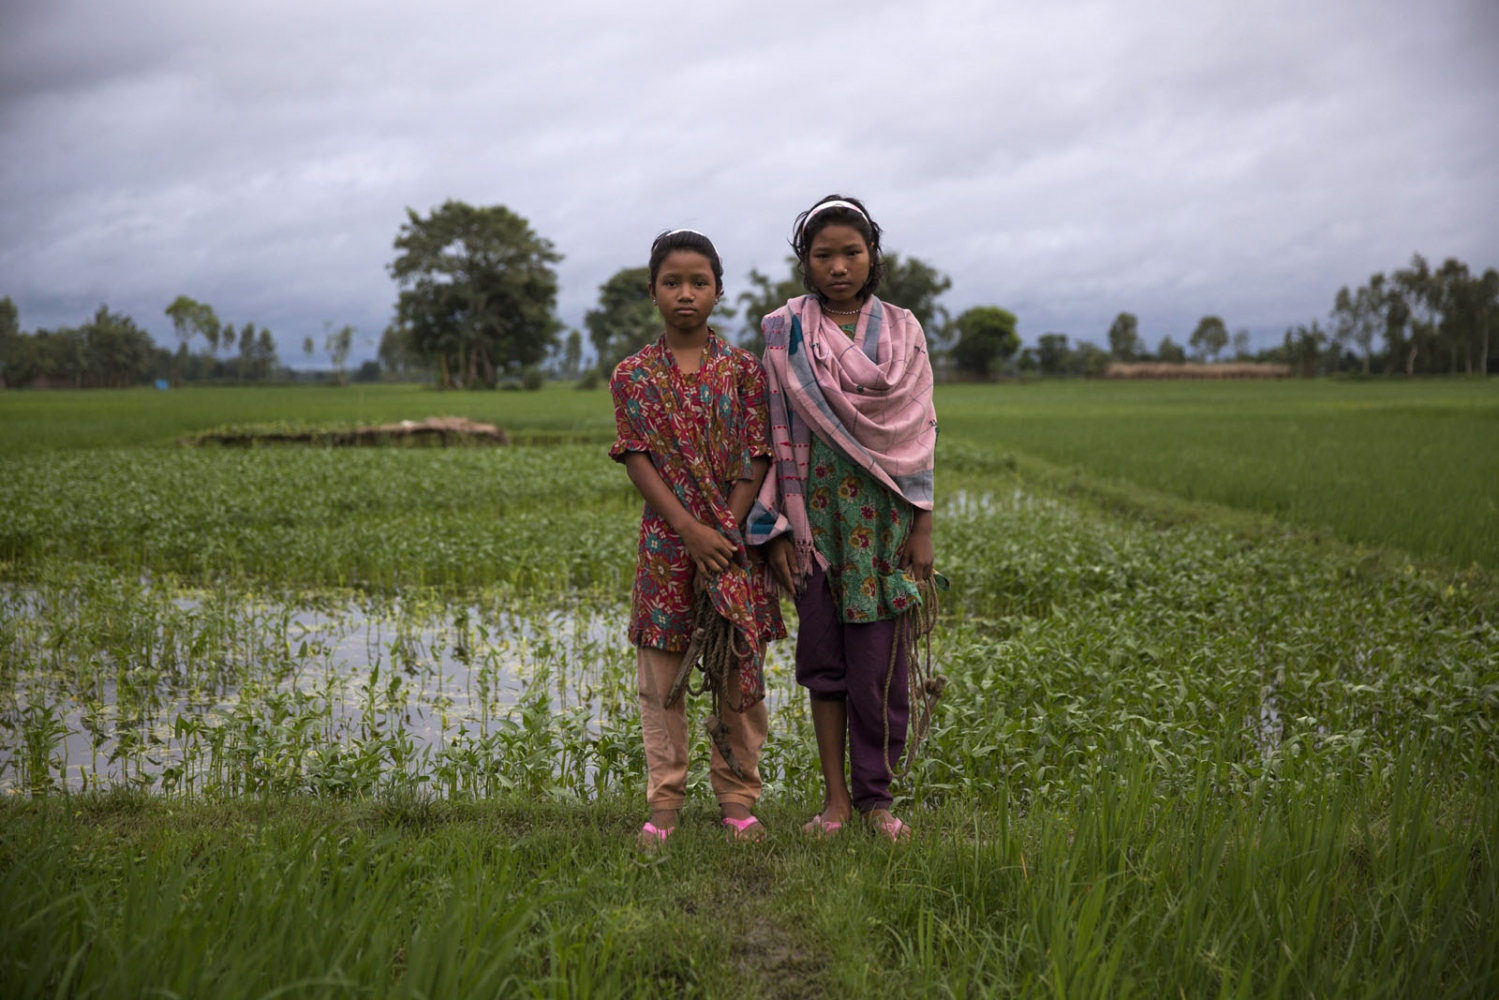 Sisters Lobar Rani Bormoni, 11, (left) and Shapla Rani Bormoni, 12, stand in a paddy field just outside their village of Ponchoki Bhajini located inside the enclave of Dhoholakhagrabari. Out of the 22 families in their village on 2 families will remain in Bangladesh, the rest including the girls, will move to India to start a new life.